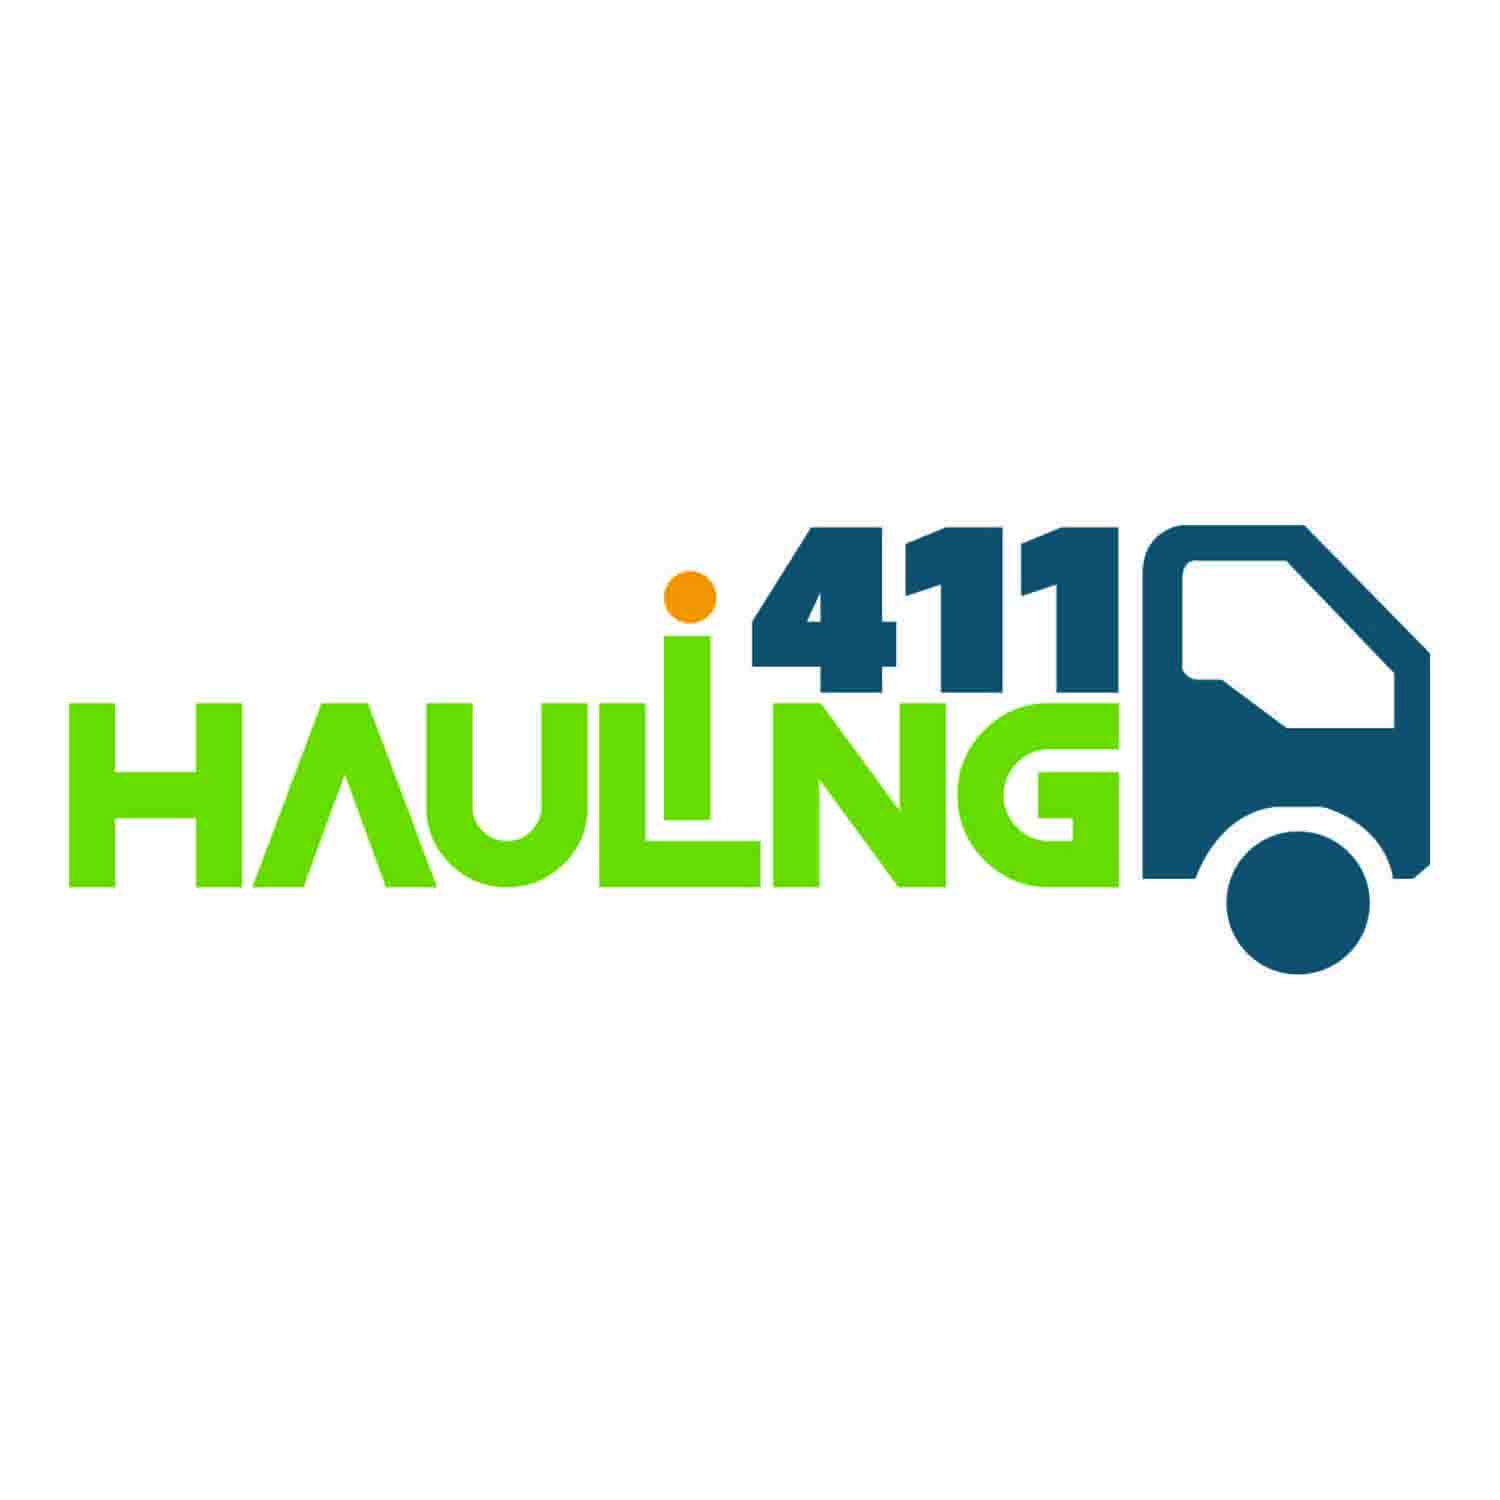 Playful, Modern, Junk Removal Logo Design for Hauling 411 by.